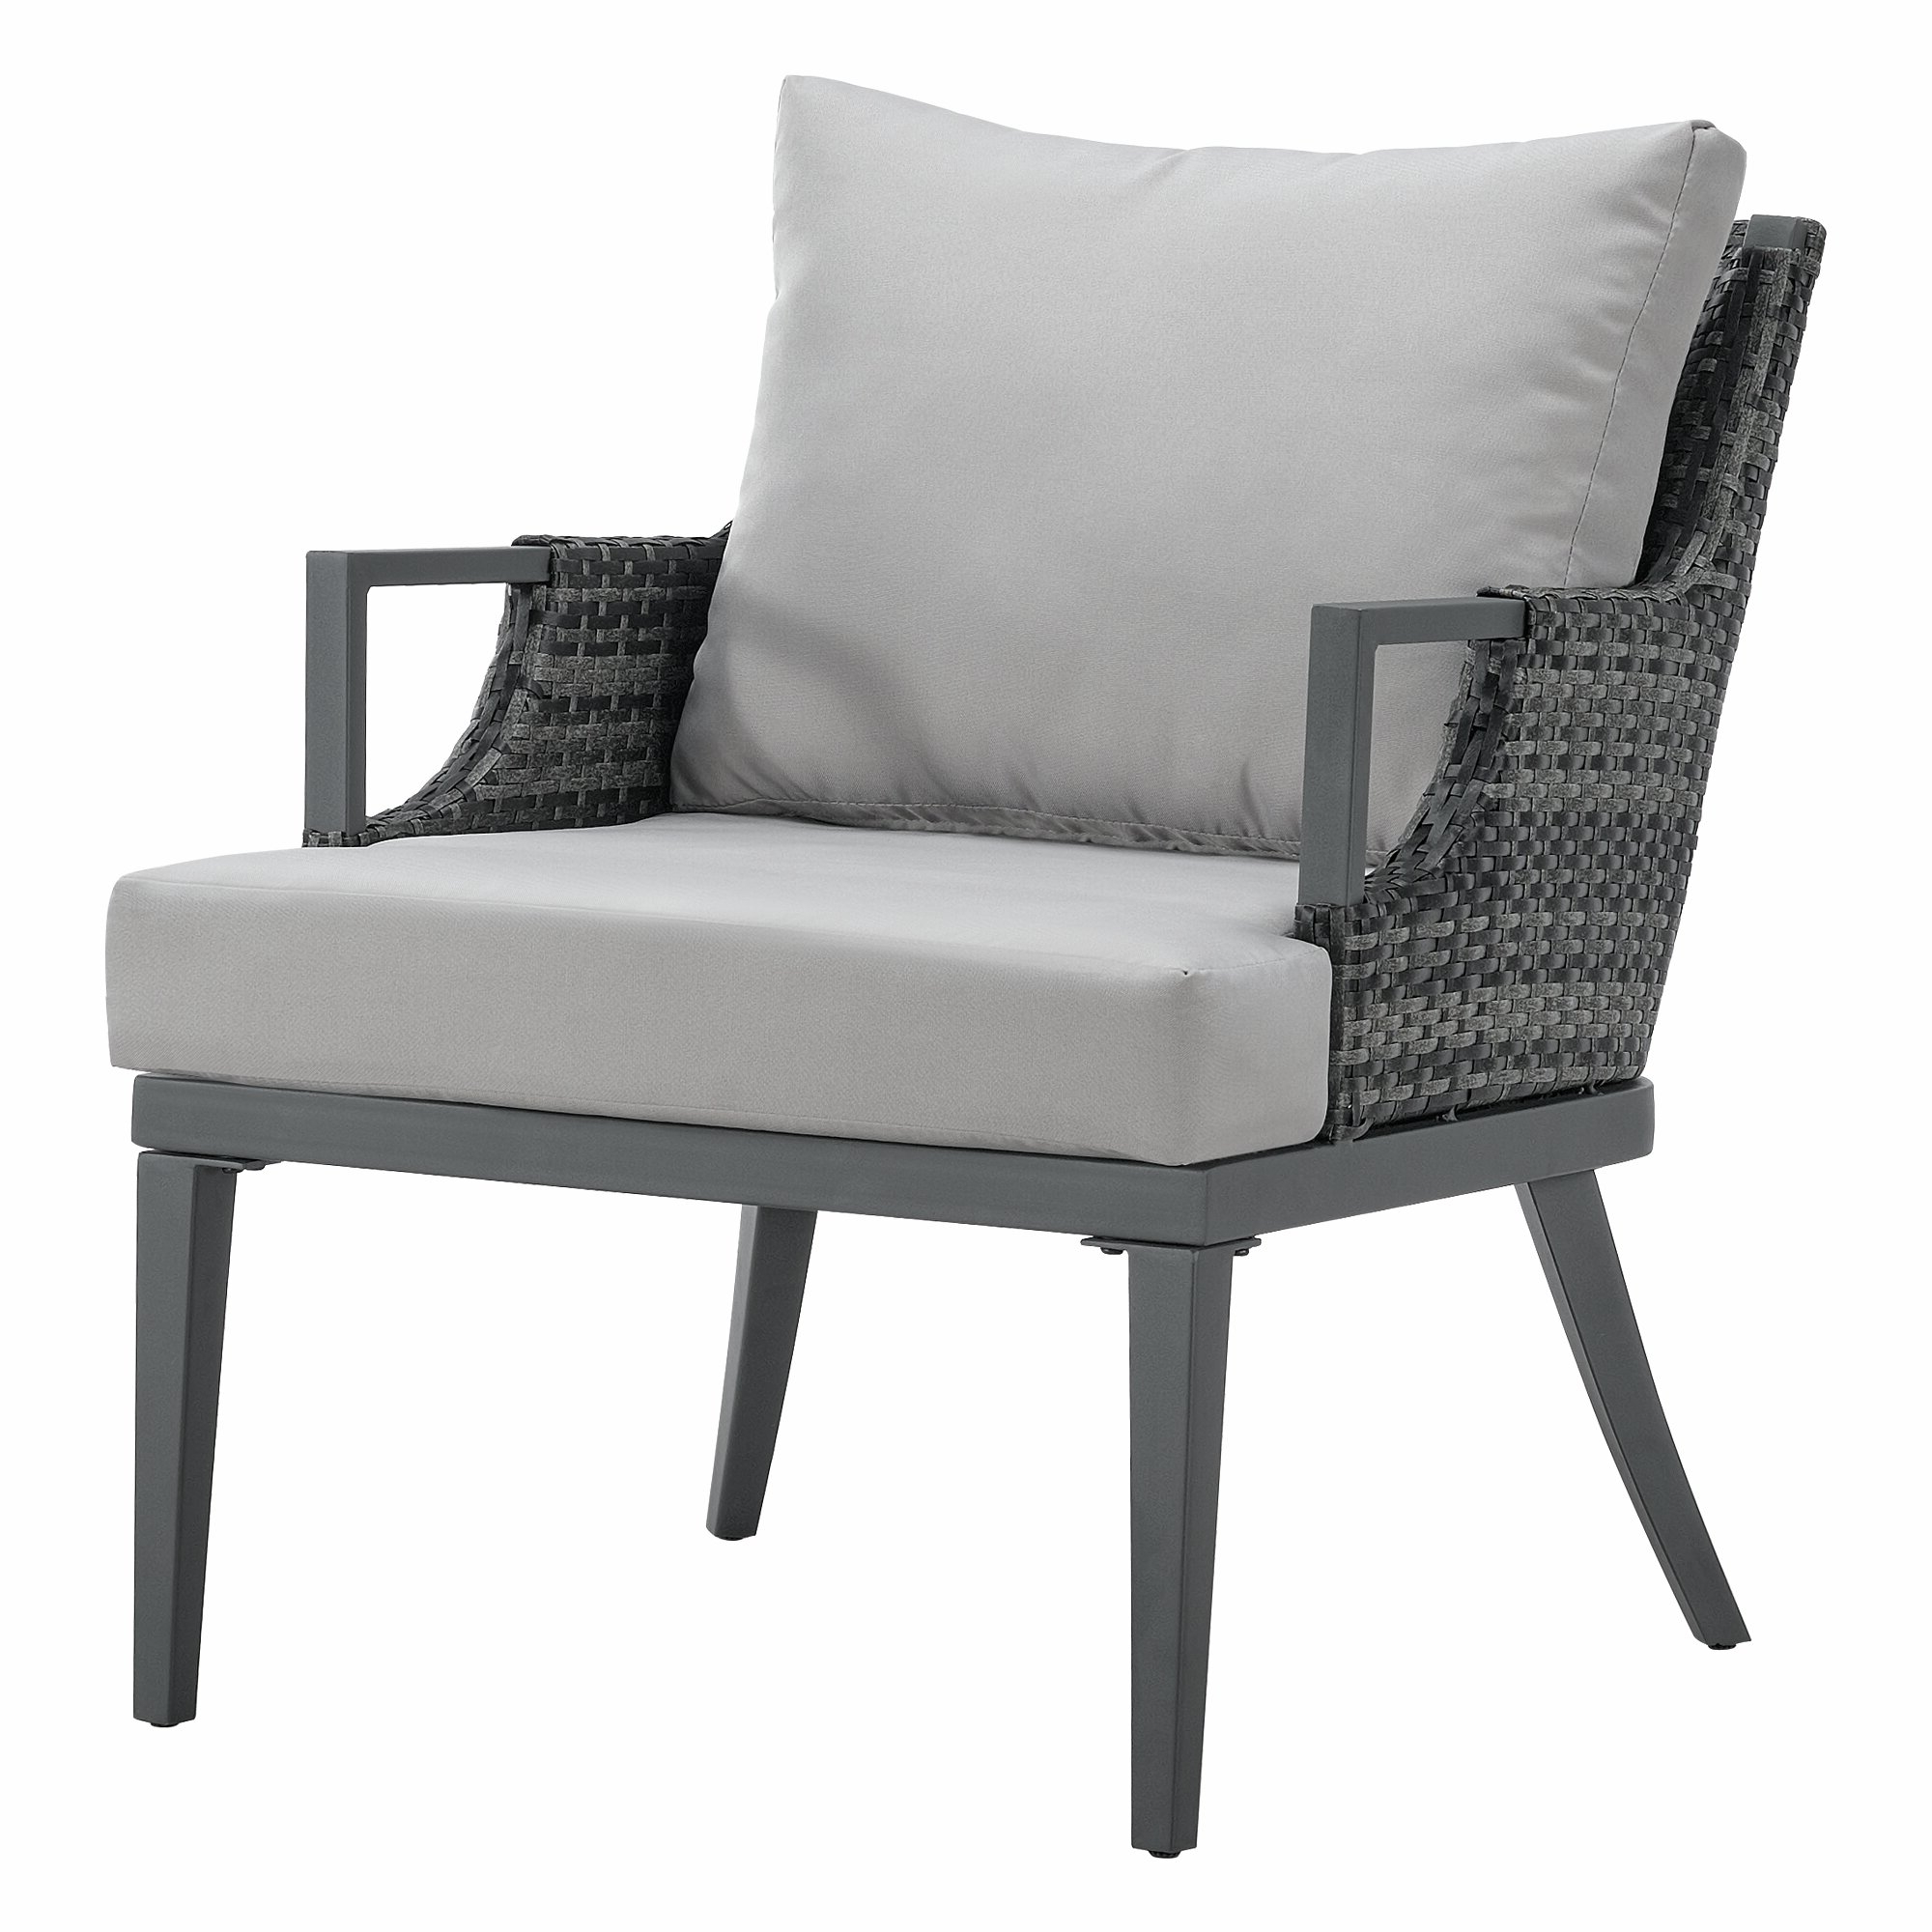 Wakeland Wicker Loveseats With Cushions Inside Famous Wakeland Patio Chair With Cushions (View 5 of 25)